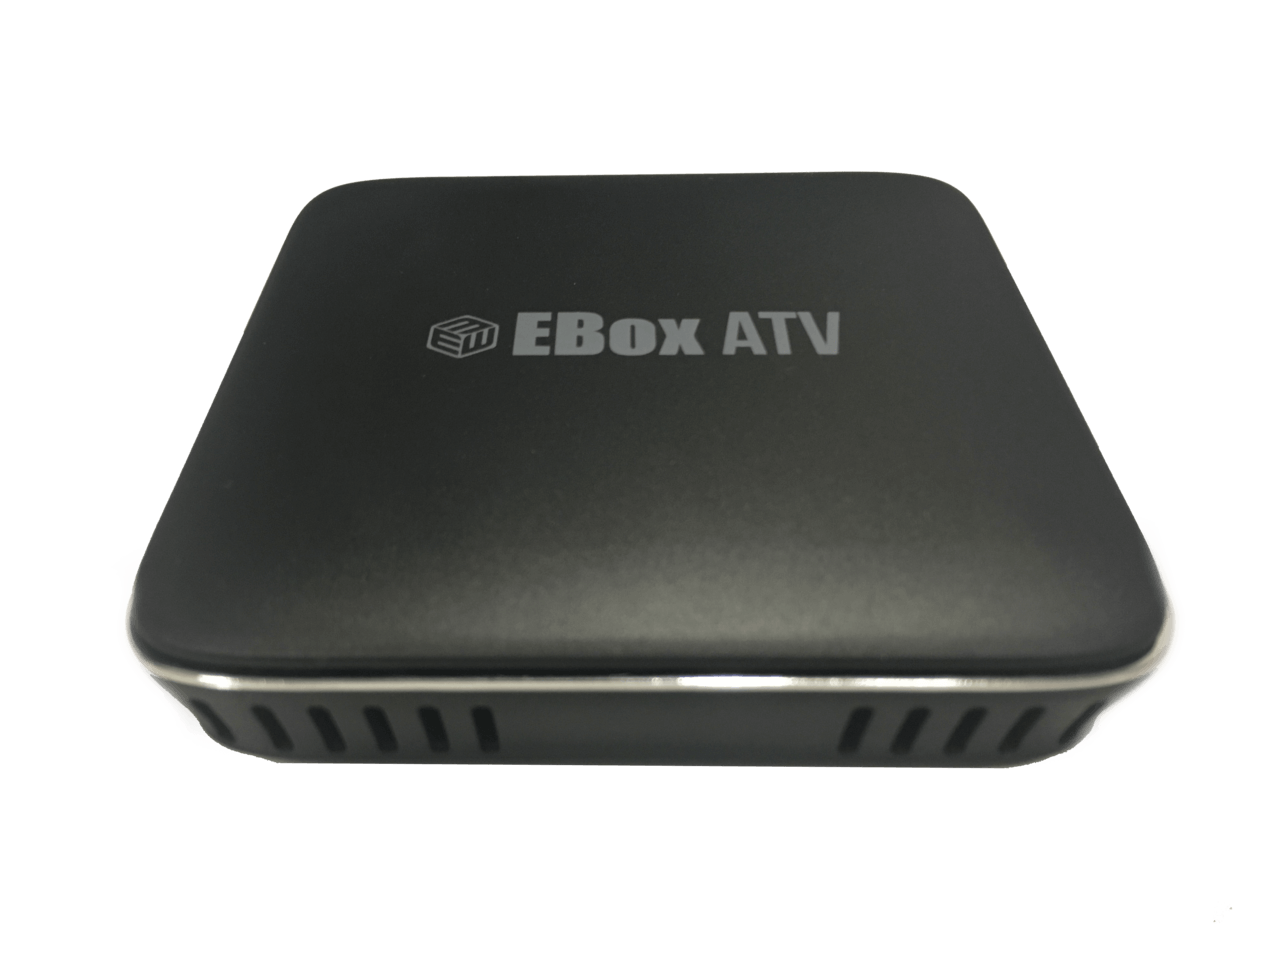 EBox ATV Android 7.1.2 TV box